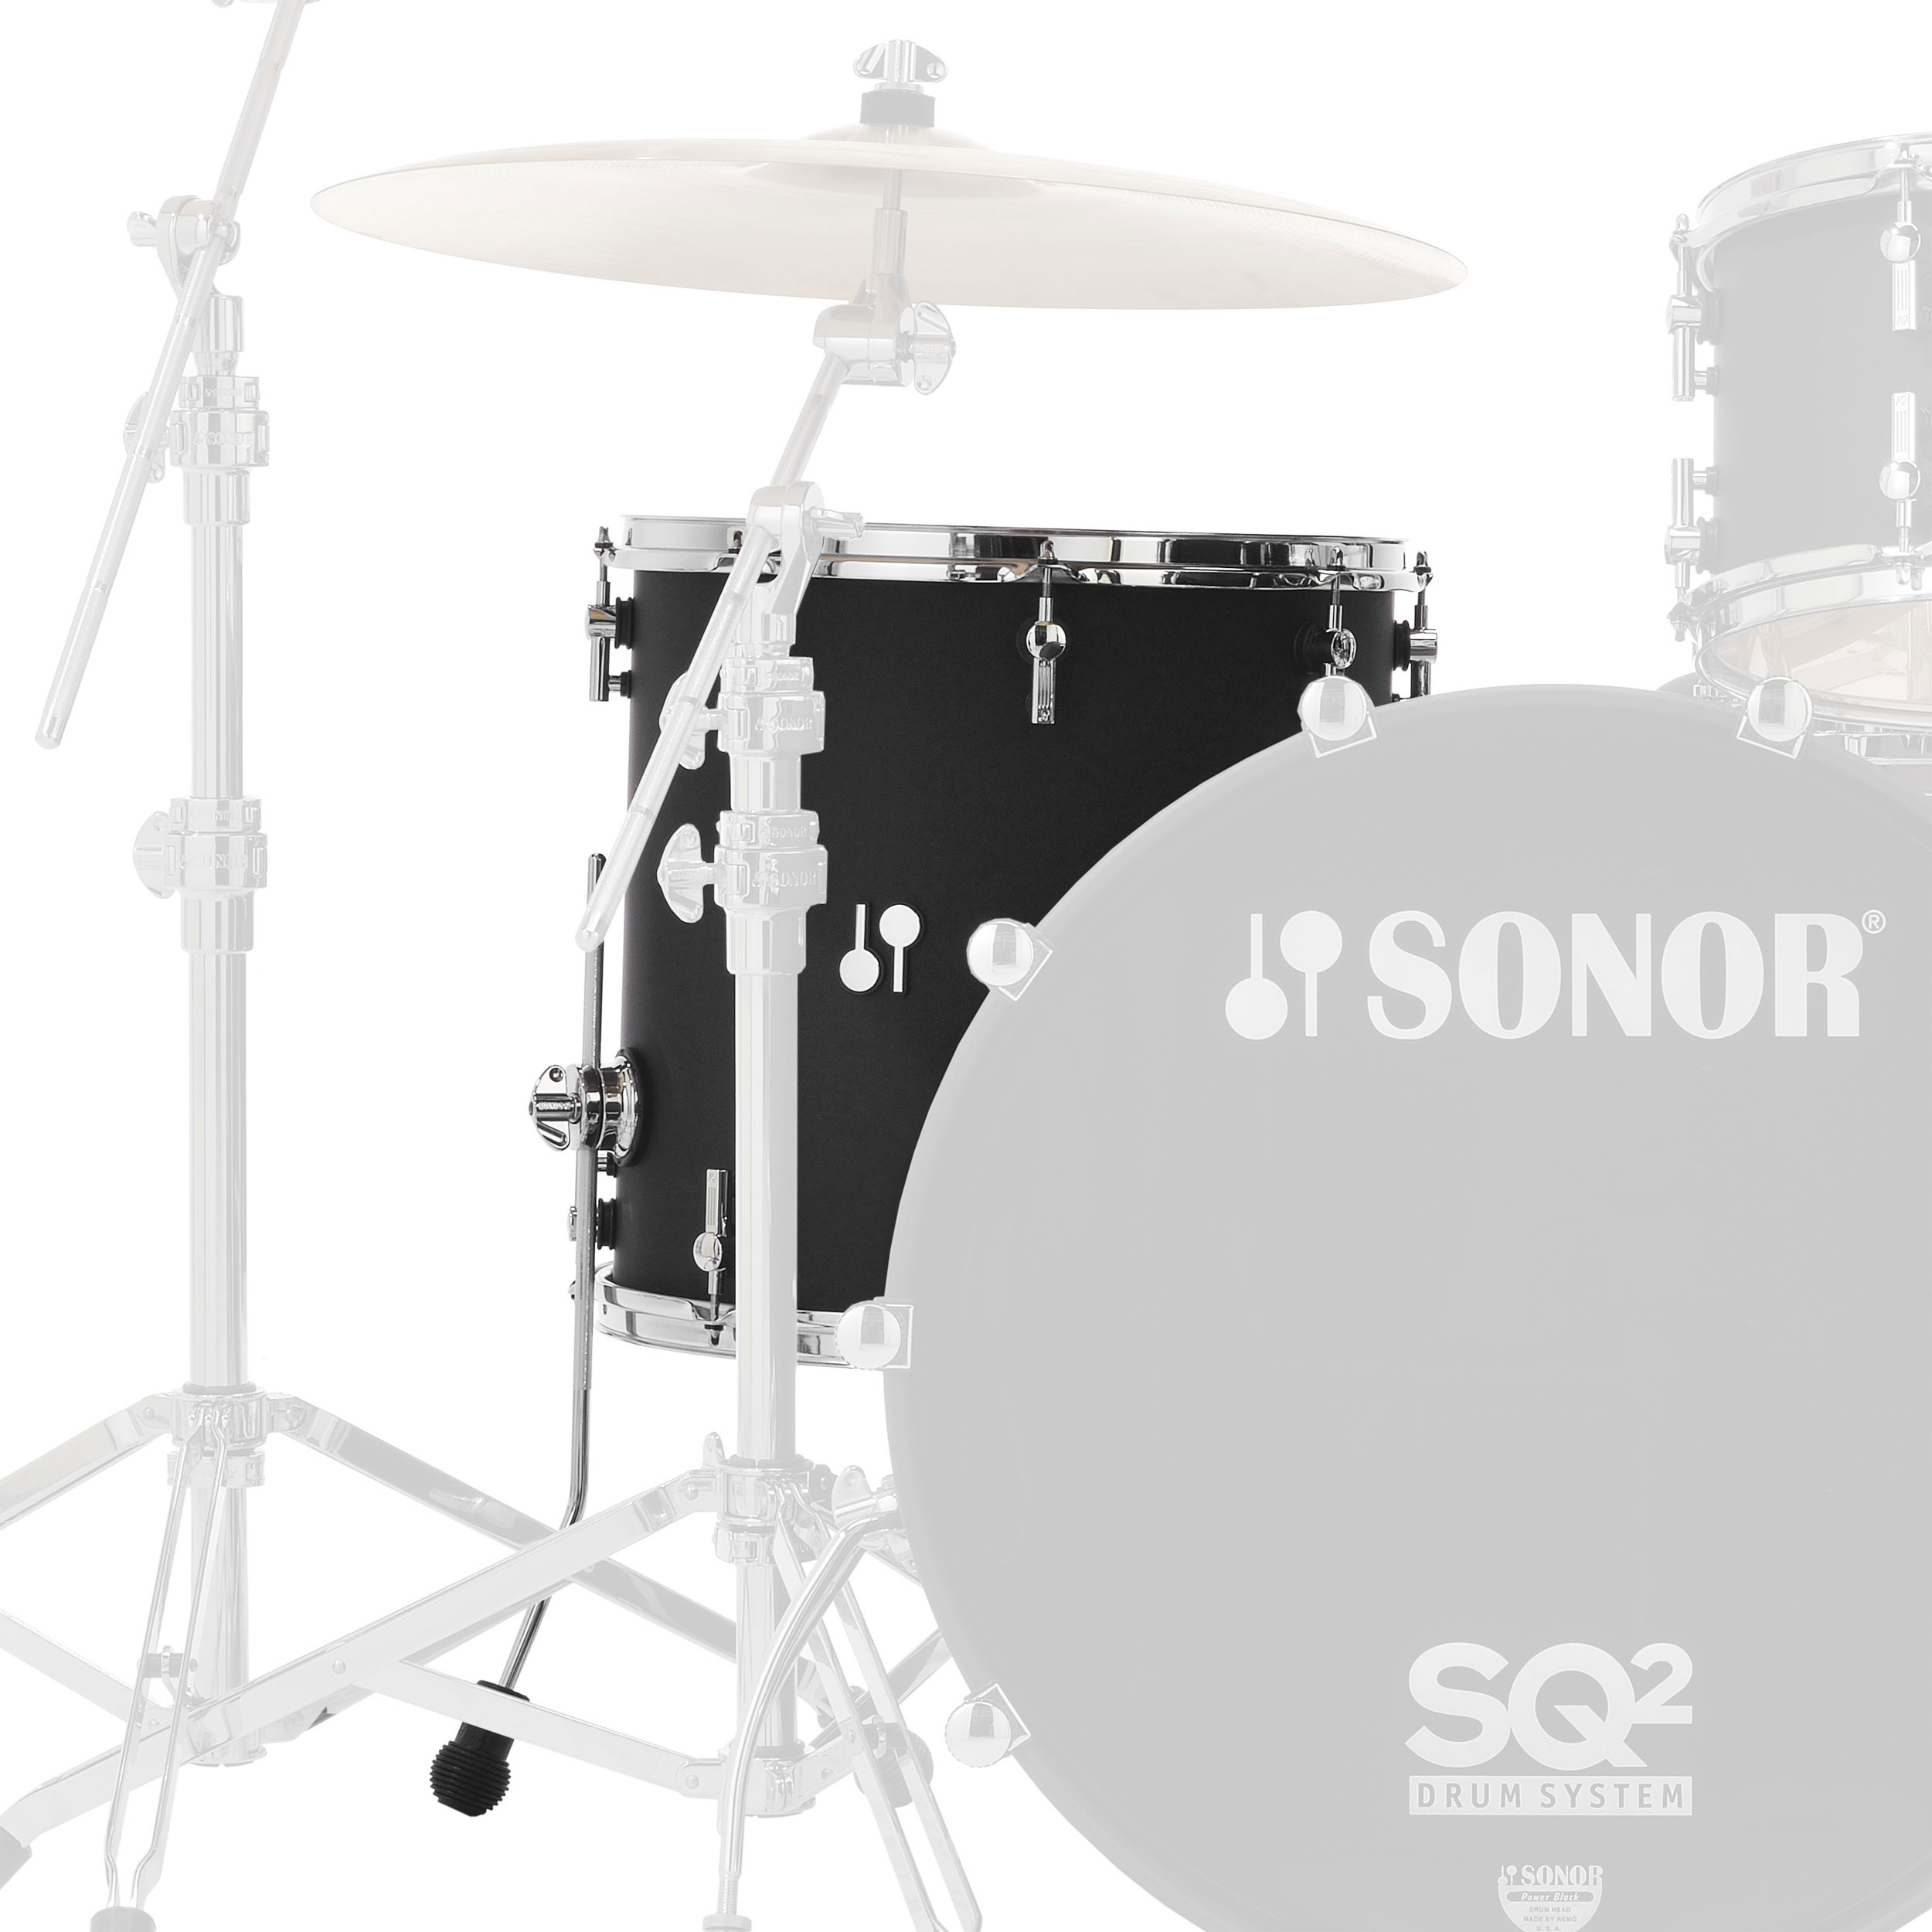 "Sonor 16"" (Diameter) x 15"" (Deep) SQ2 Vintage Maple Floor Tom"